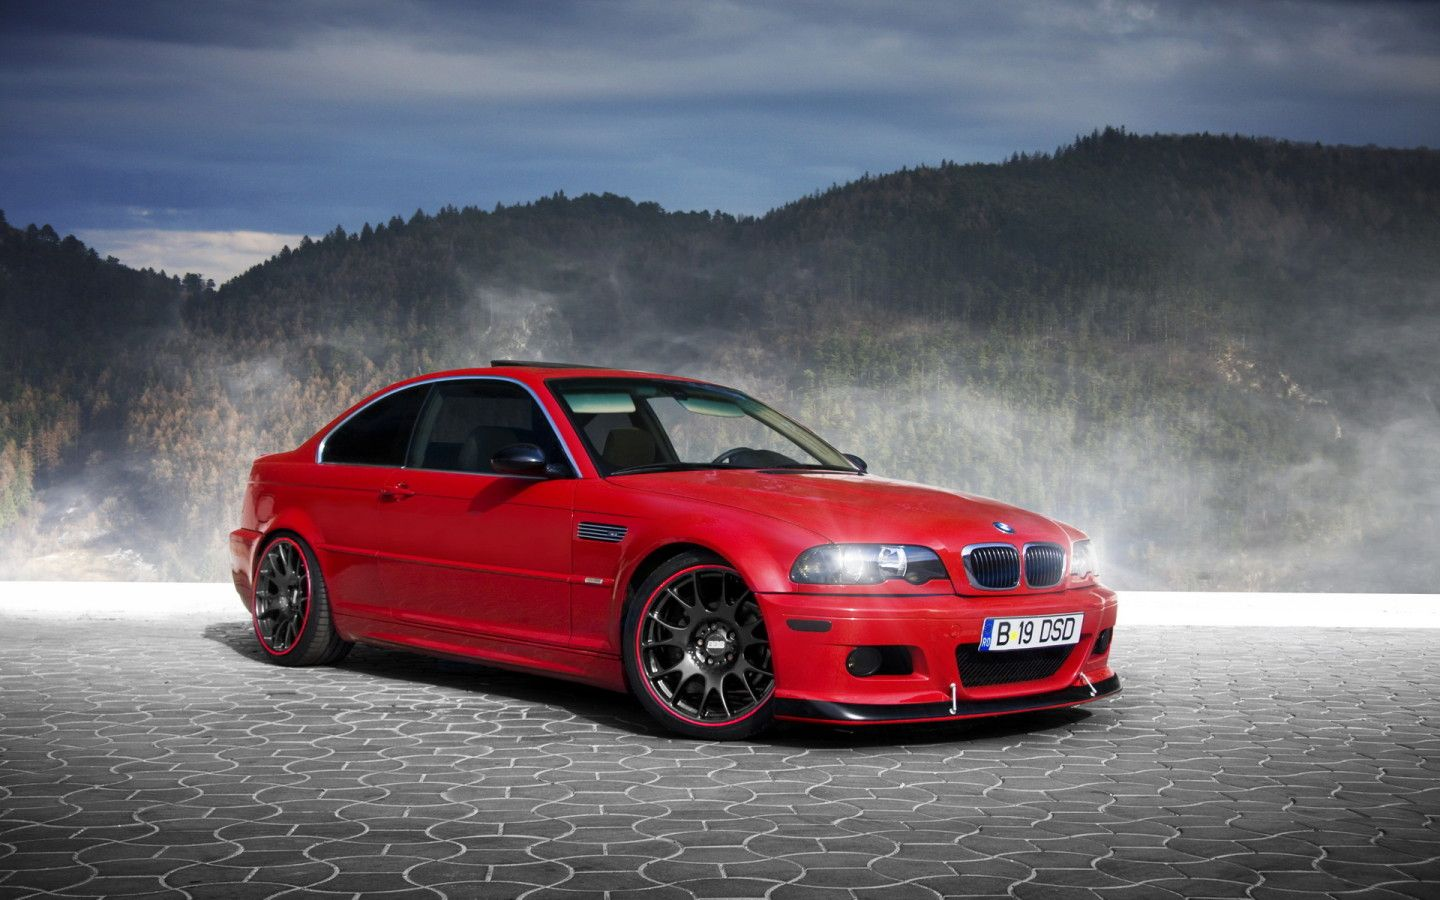 E46 M3 Wallpaper 1440x900 With Images Bmw